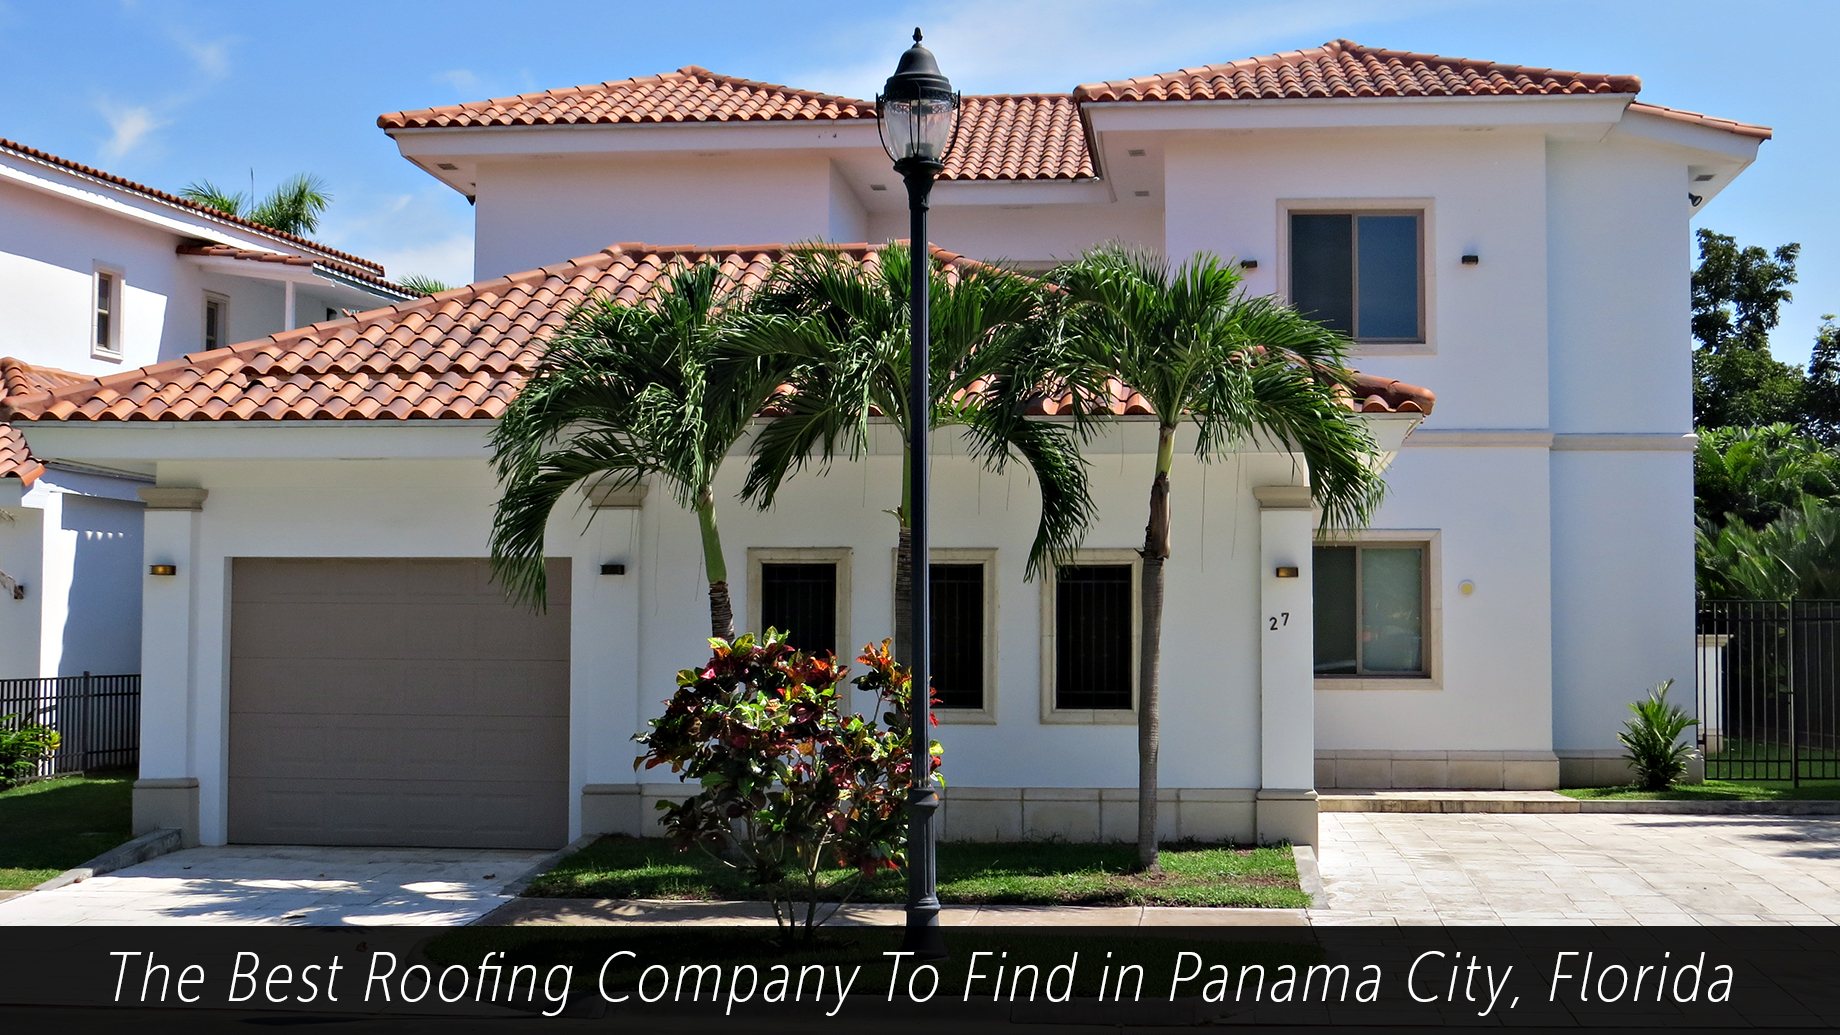 The Best Roofing Company To Find in Panama City, Florida